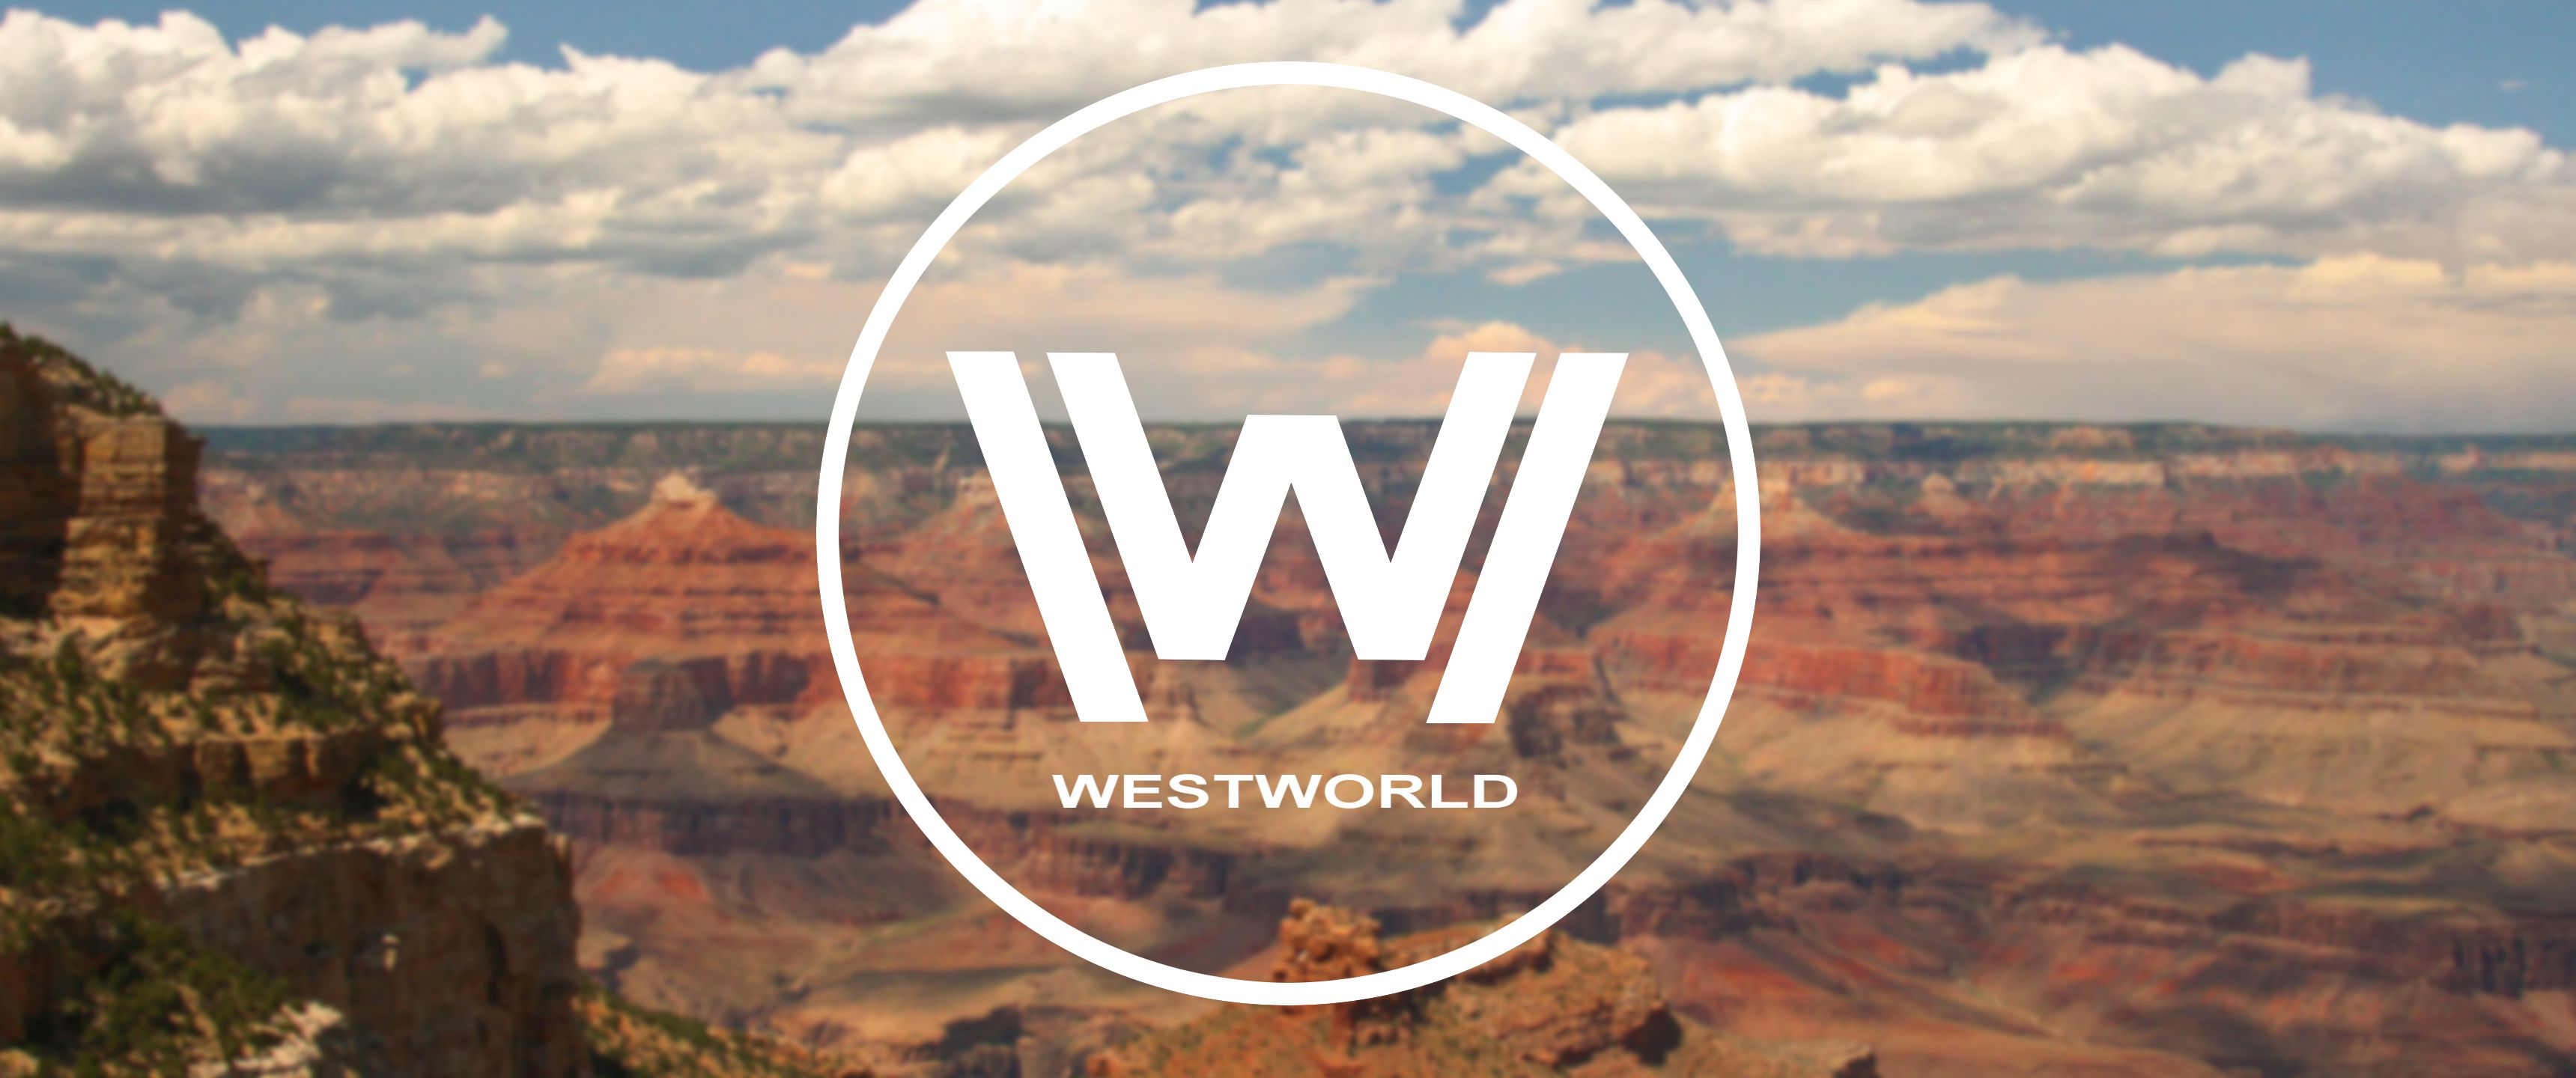 Haven T Seen A Westworld Wallpaper For Ultrawides Made A Simple One Should Be Fine For 16 9 Too Westworld Worlds Of Fun Wallpaper